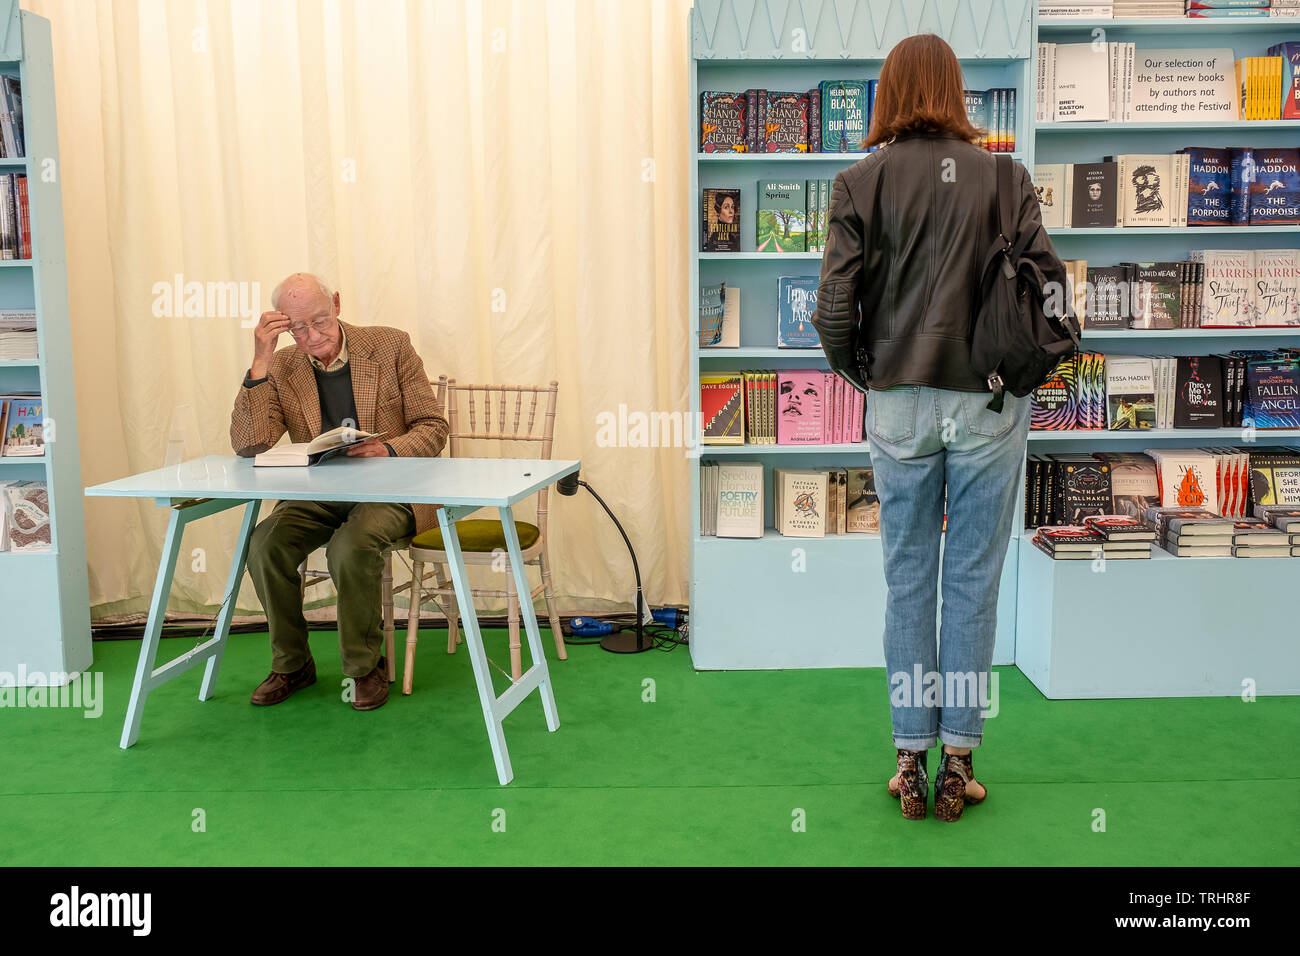 Book store of Hay Festival, Hay on Wye, Wales - Stock Image